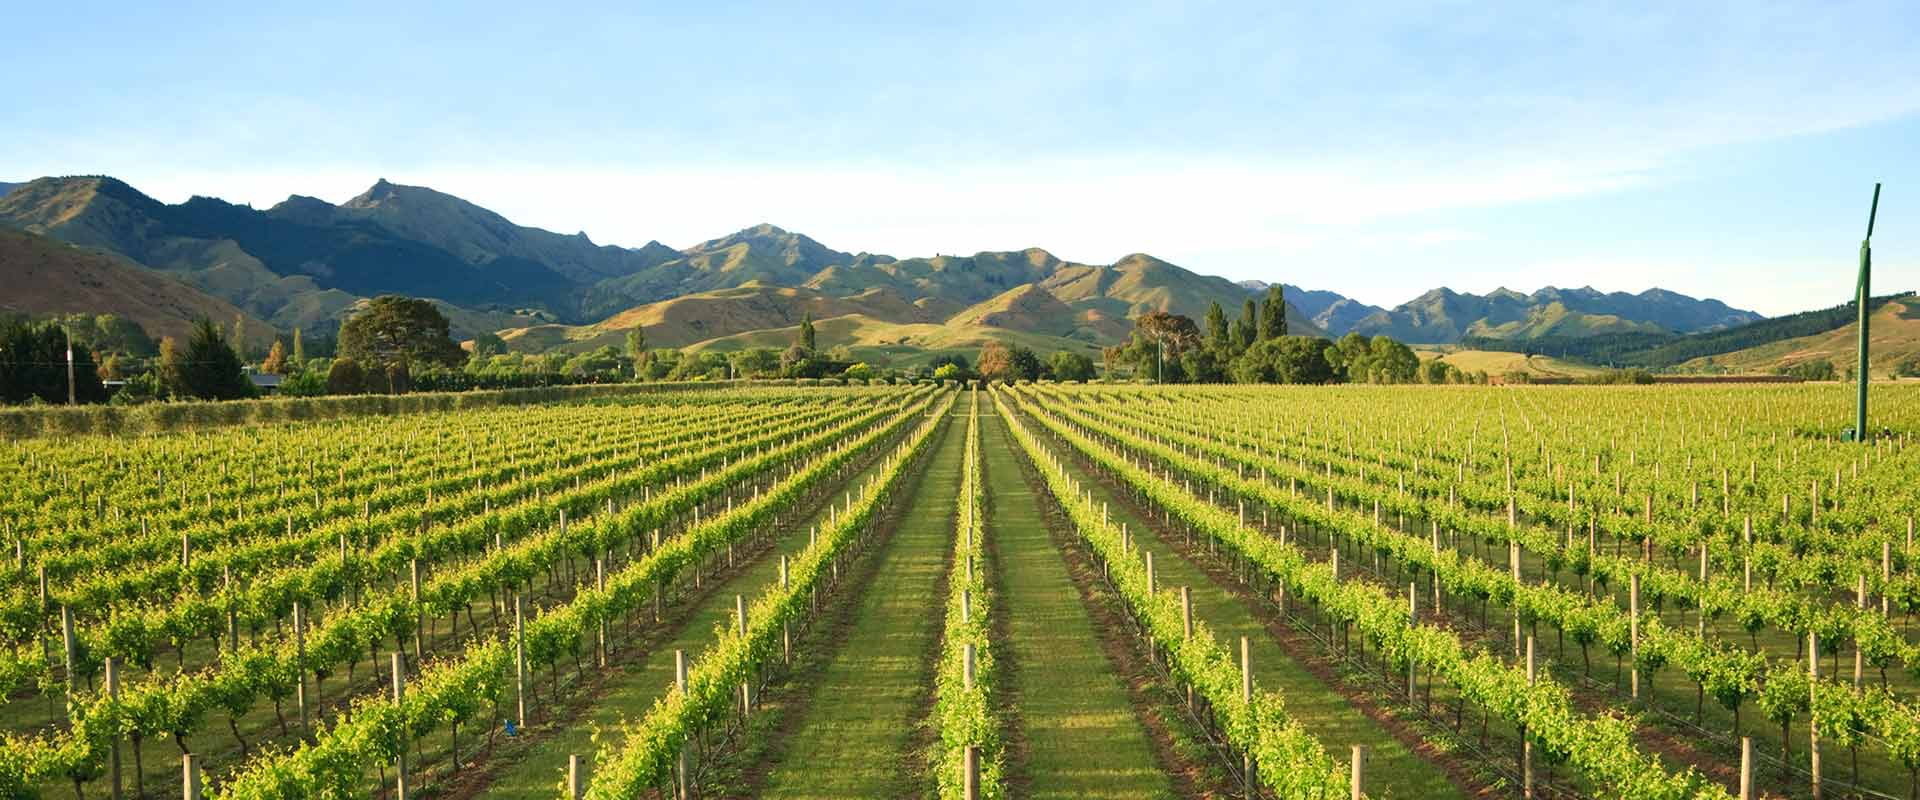 Rows of lush green vines, New Zealand